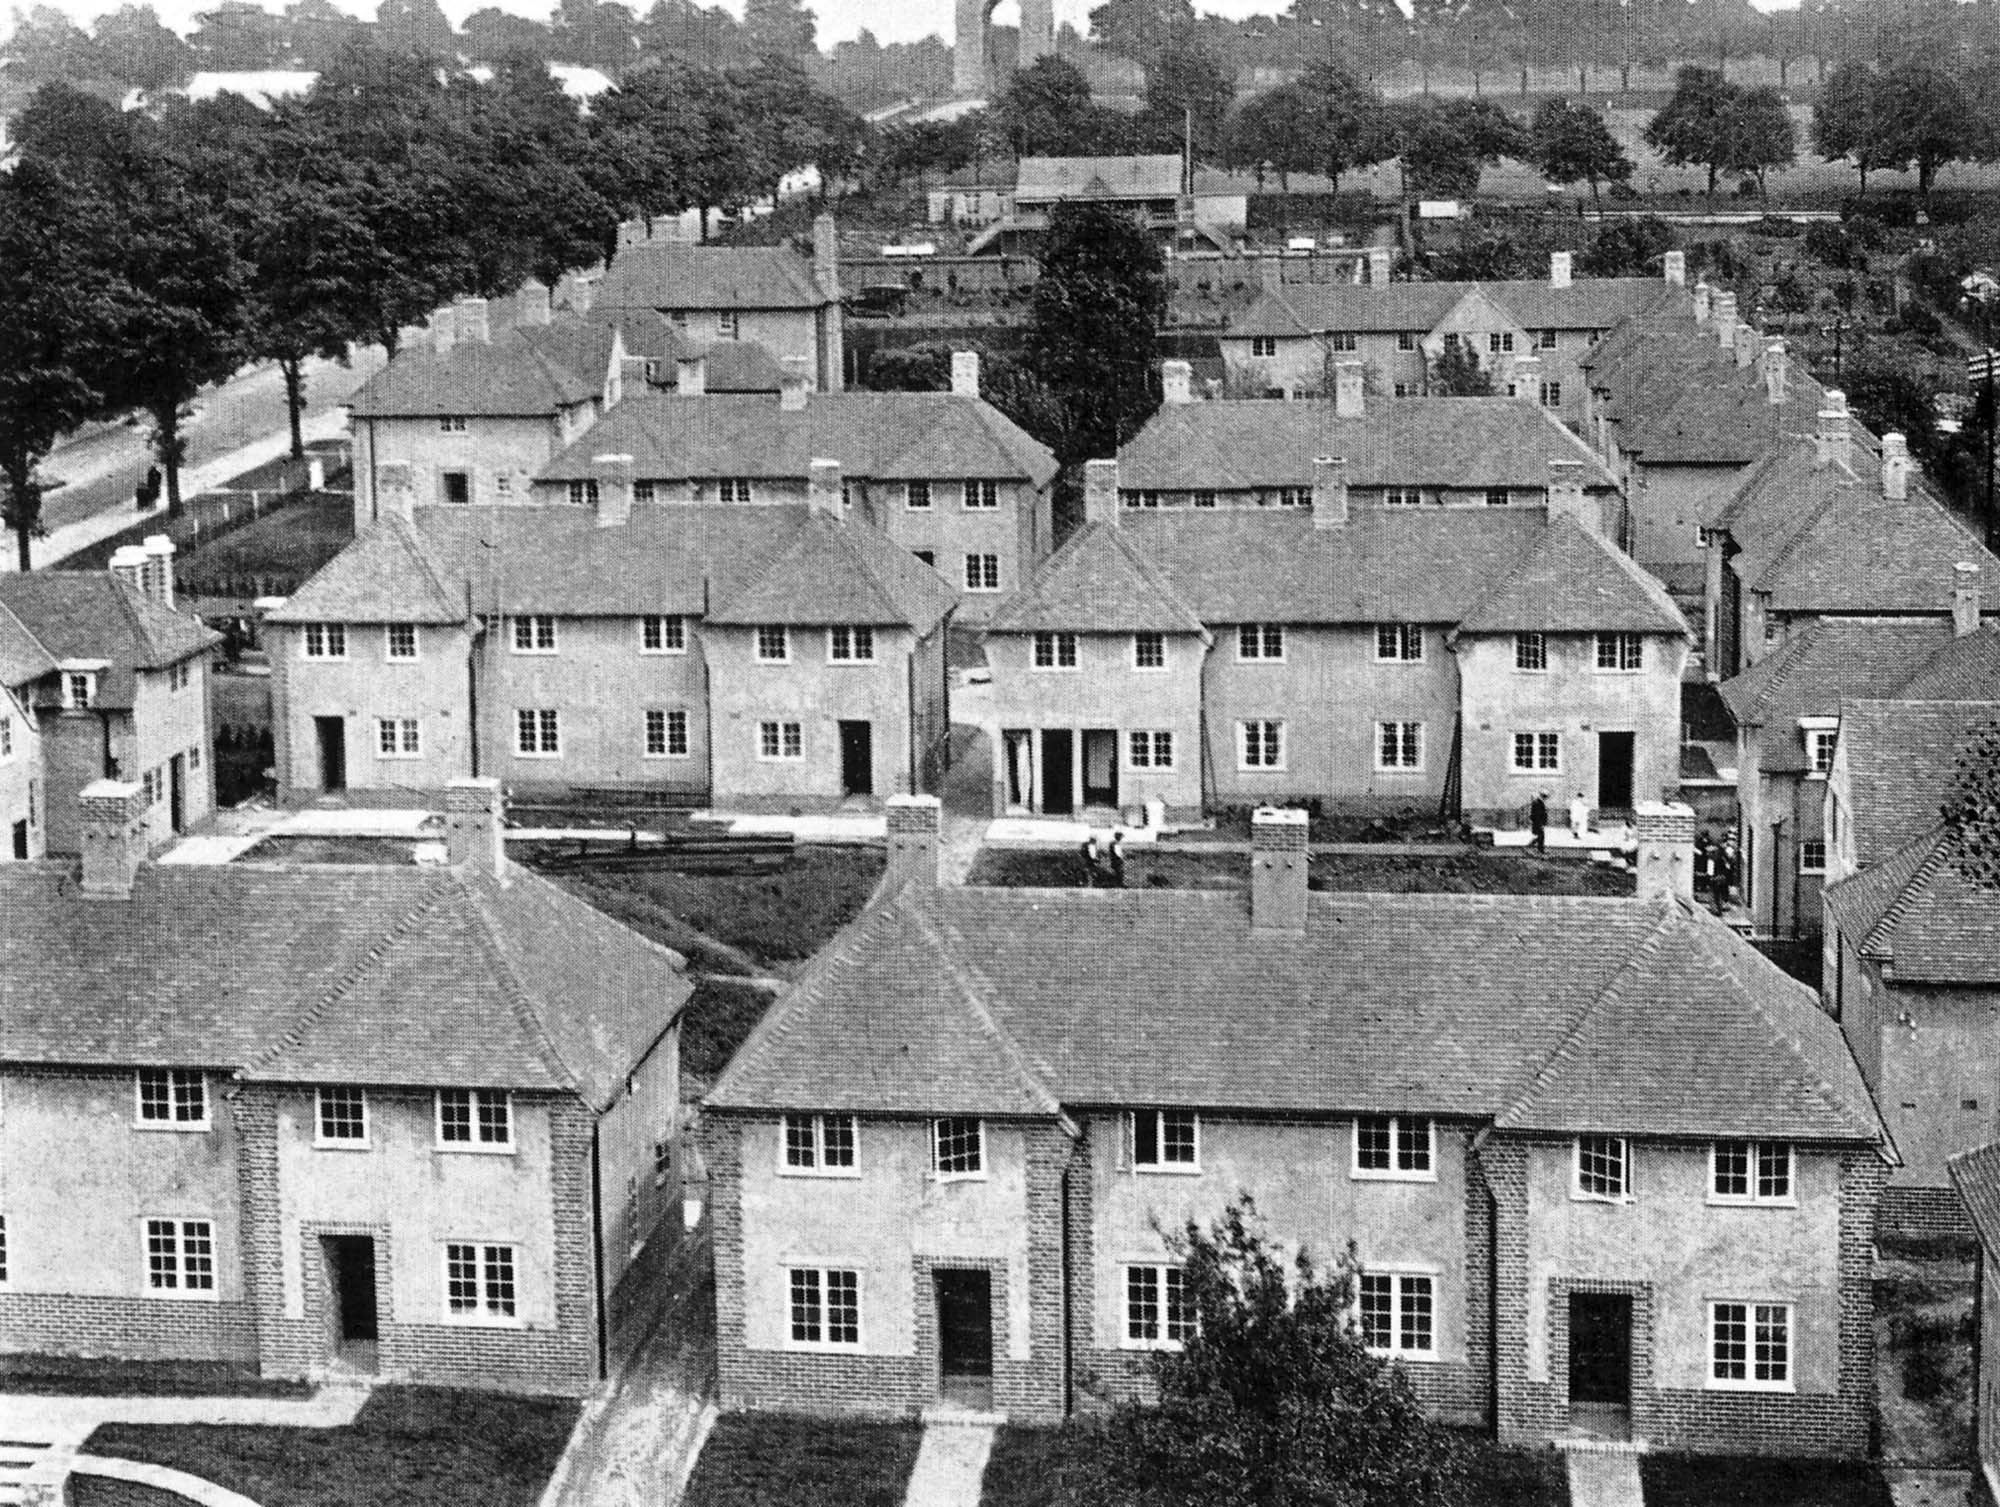 The 'firemen's houses' that surrounded Central Station, the Victoria Park War Memorial is in the far distance. Many of the houses still remain - Malc Tovey